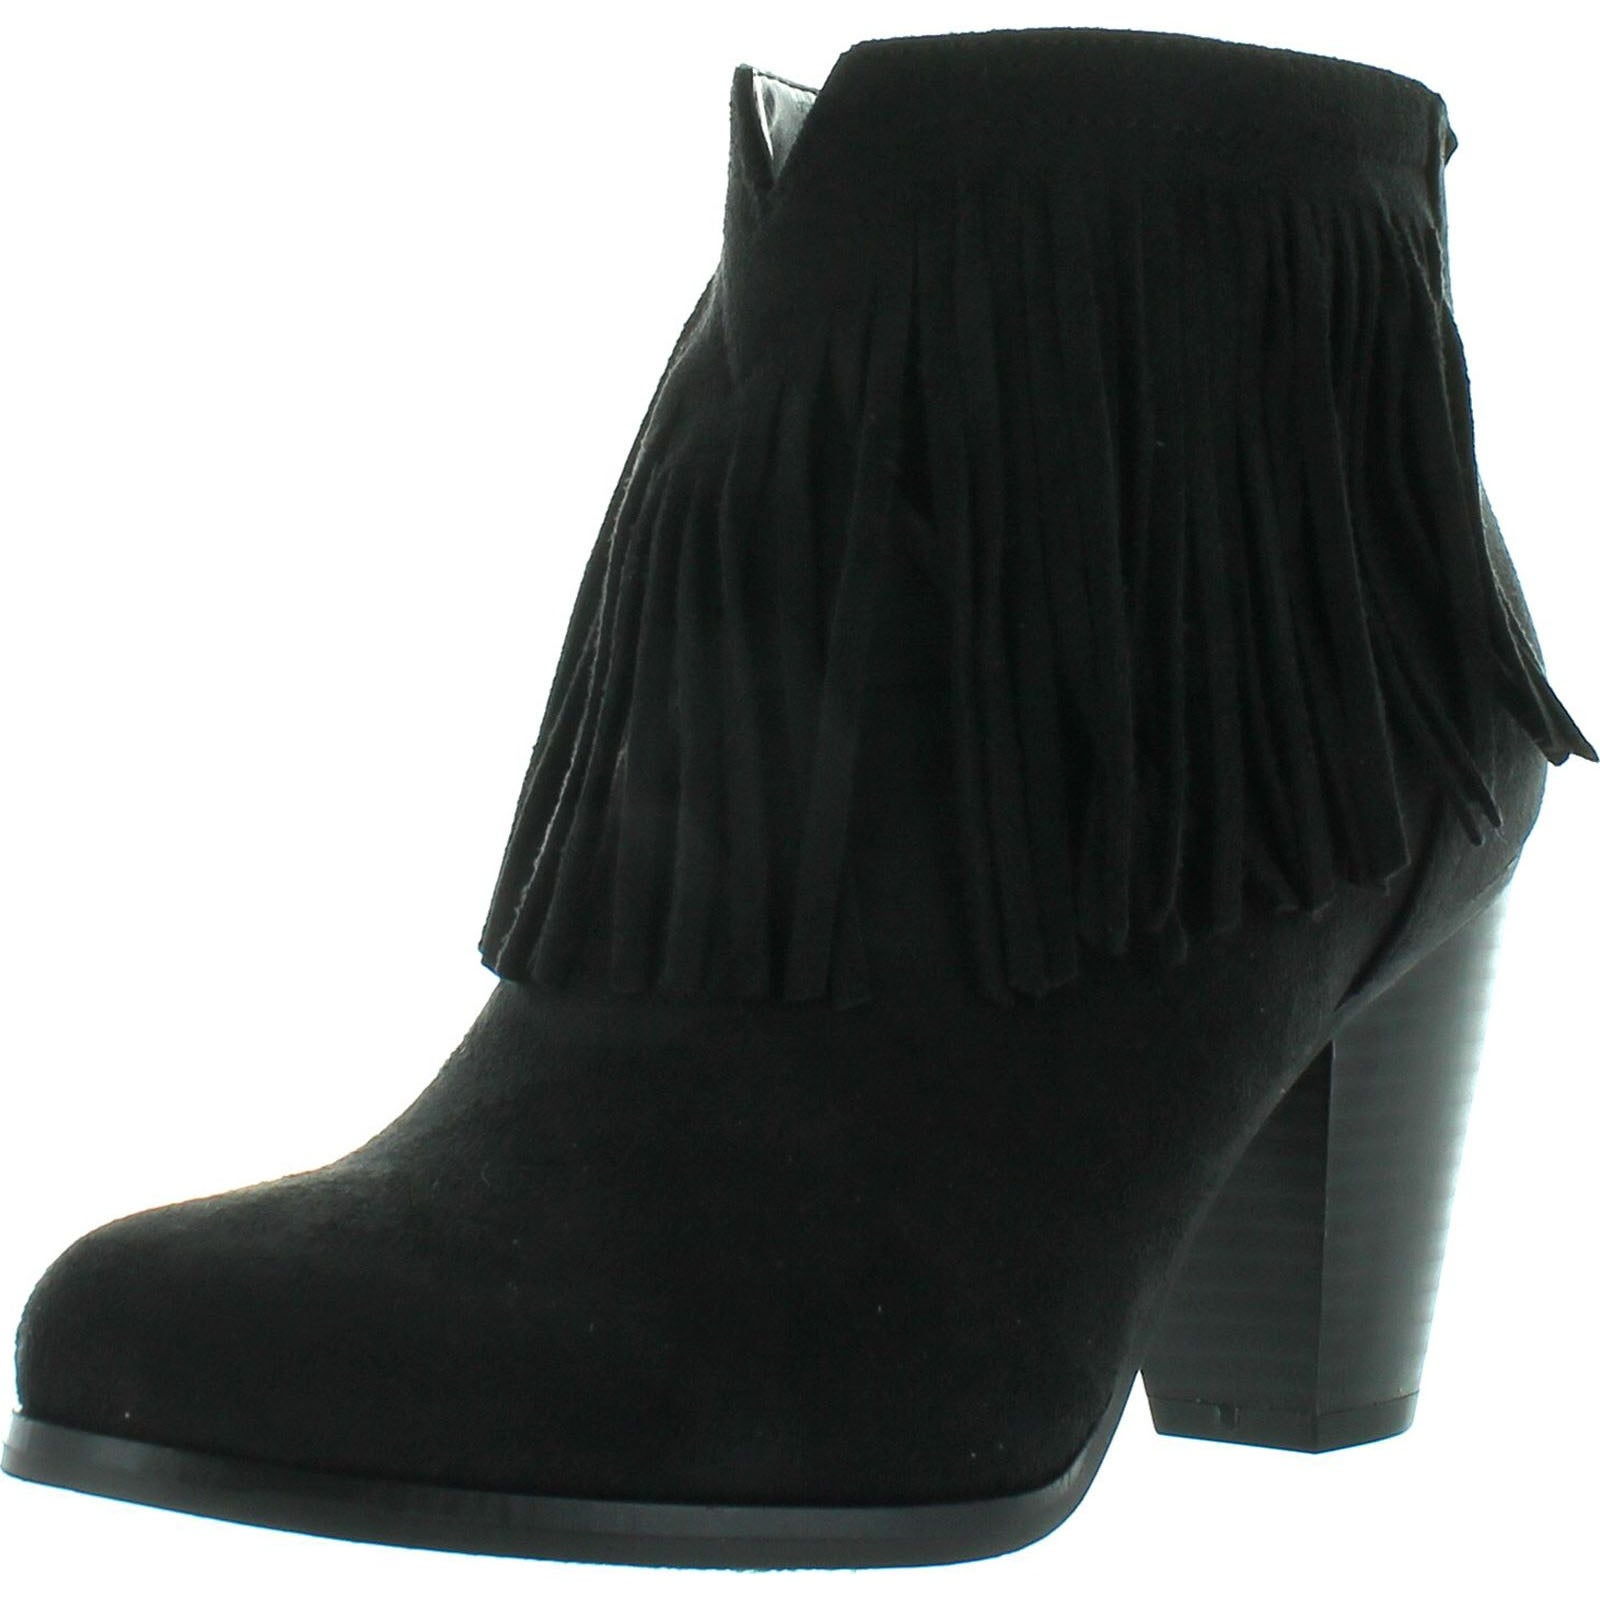 e5f6c7feac1ae Soda Women's Agree Cowboy Fringe Faux Suede Closed Toe Stacked Heel Ankle  Boot